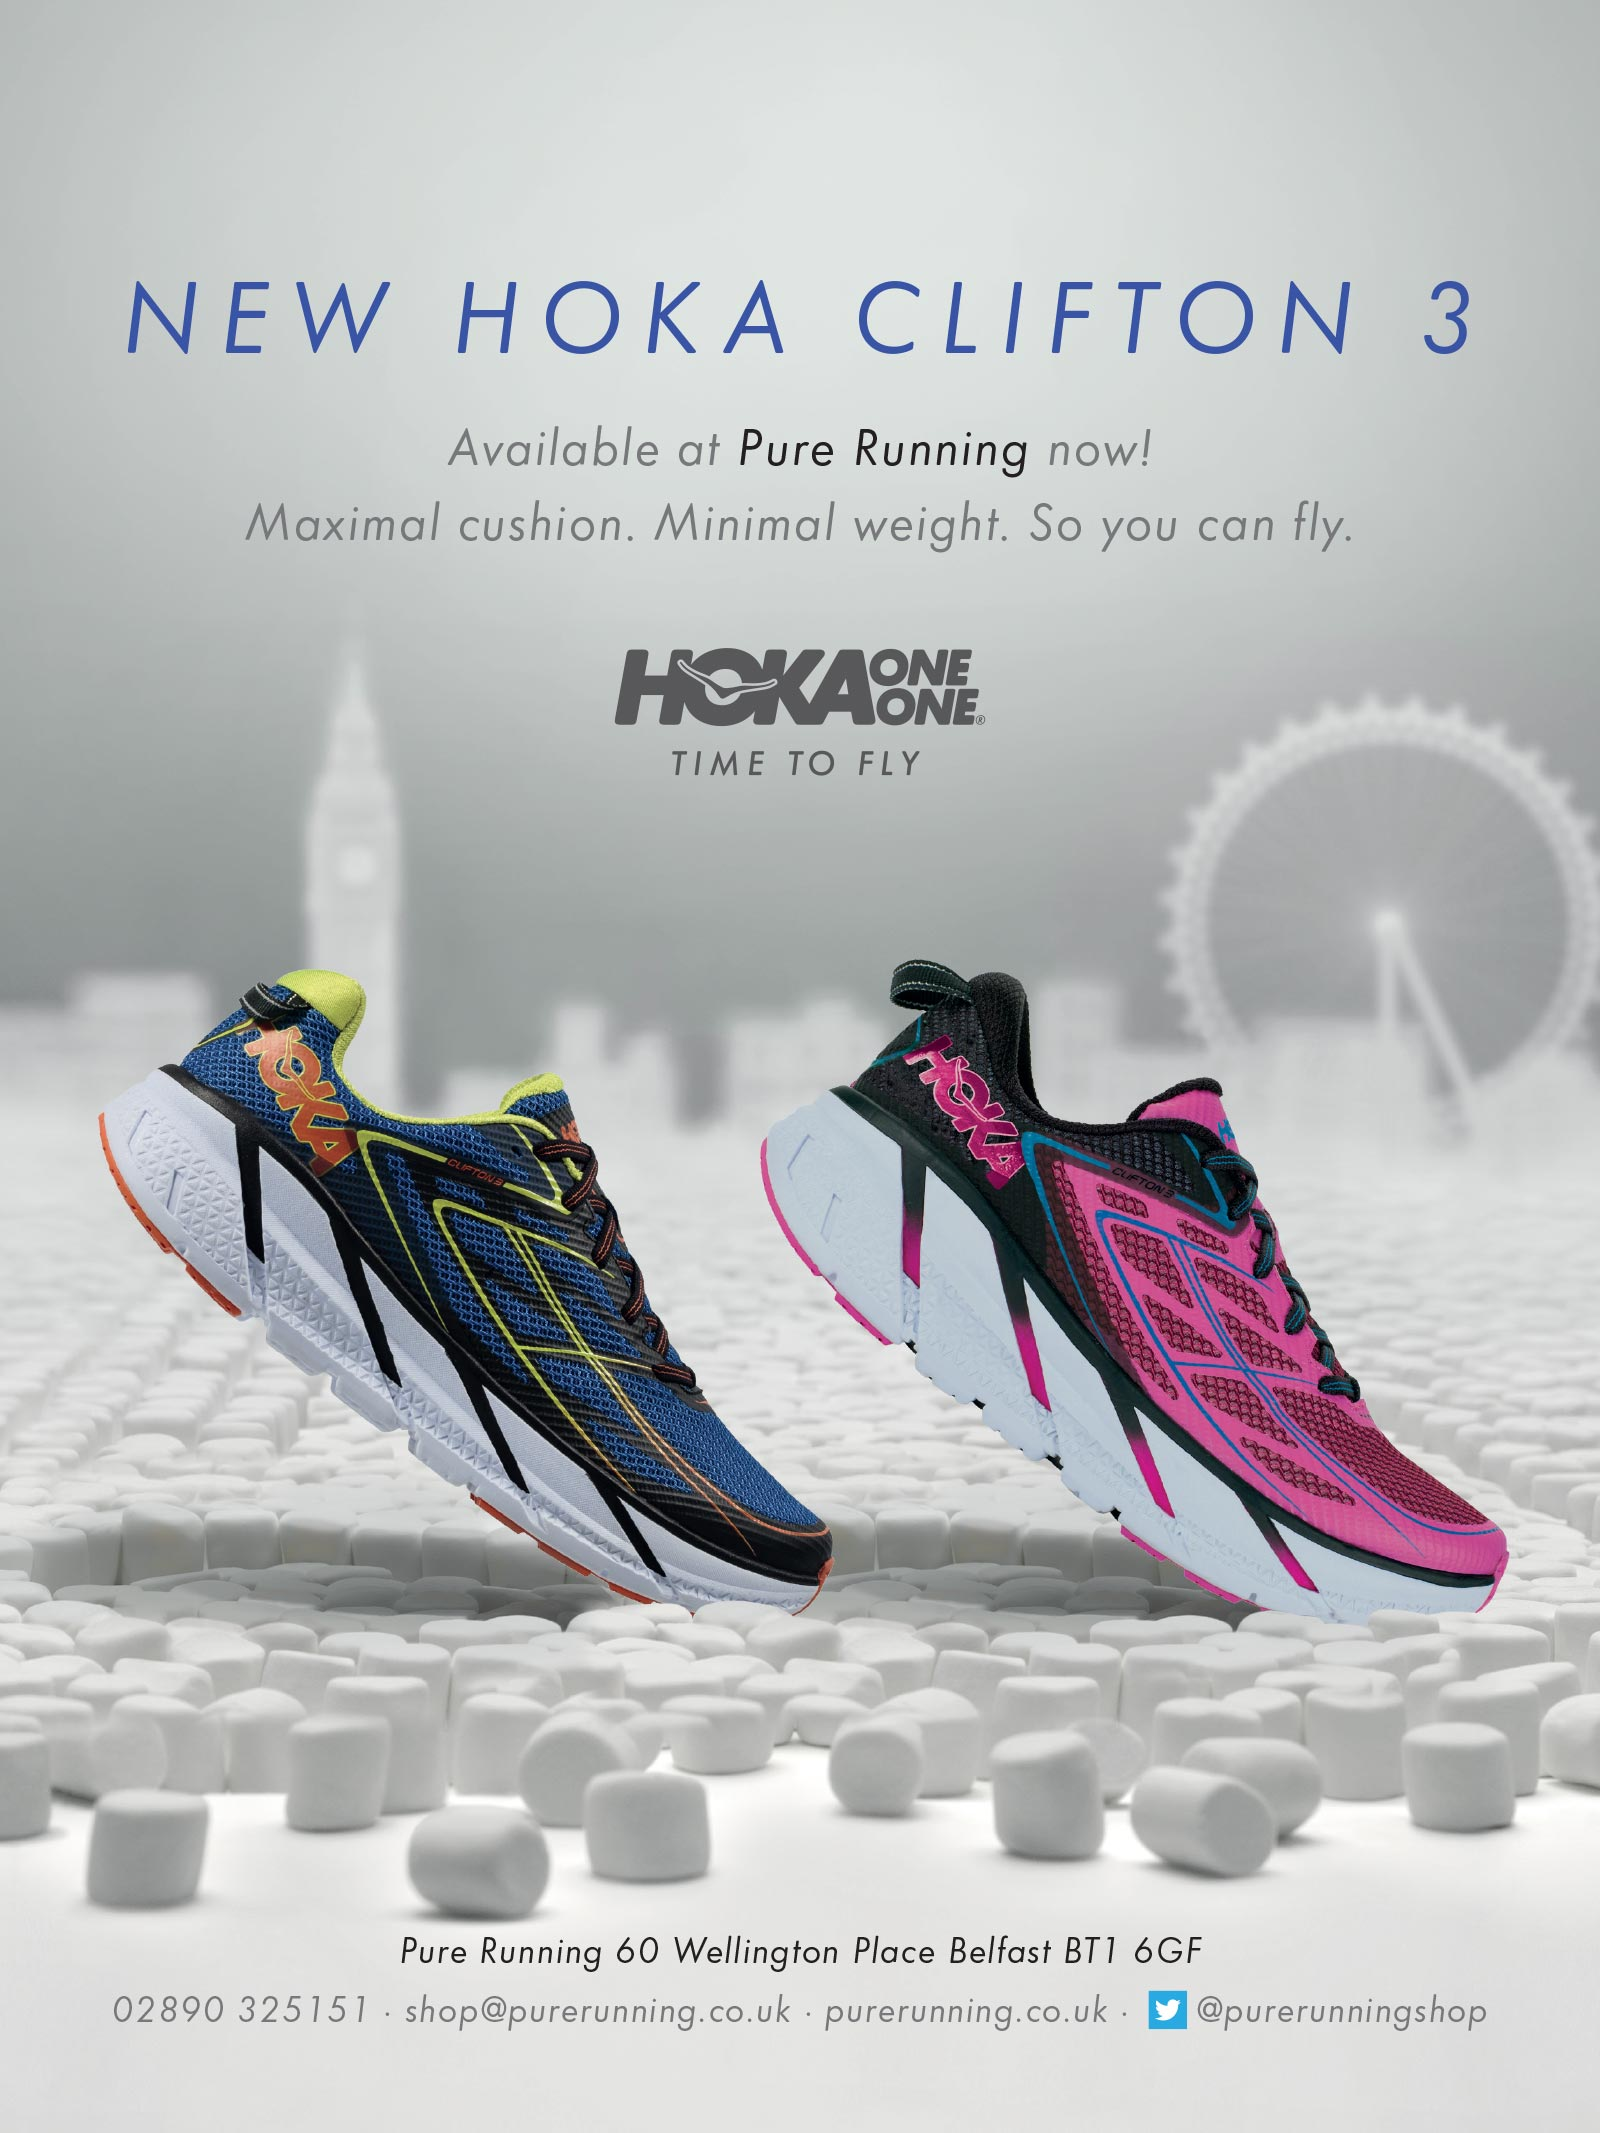 hoka-advert-pure-running